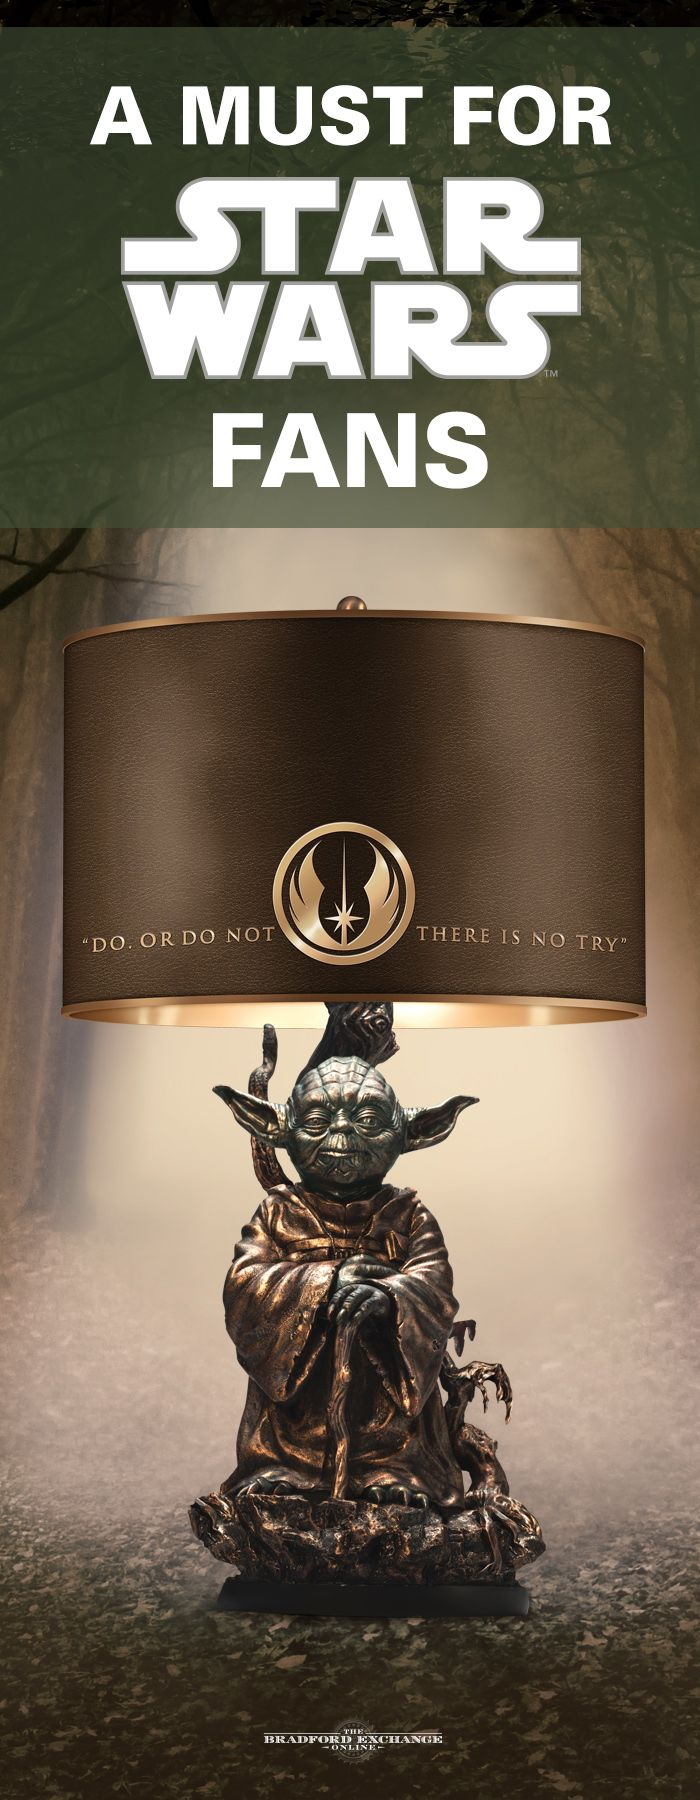 """Set the wisdom of Jedi Master Yoda aglow! This officially-licensed STAR WARS lamp showcases the iconic Jedi Master in a museum-quality cold-cast bronze sculpt. Plus, Yoda's inspiring words grace the cloth shade: """"DO. OR DO NOT. THERE IS NO TRY."""""""